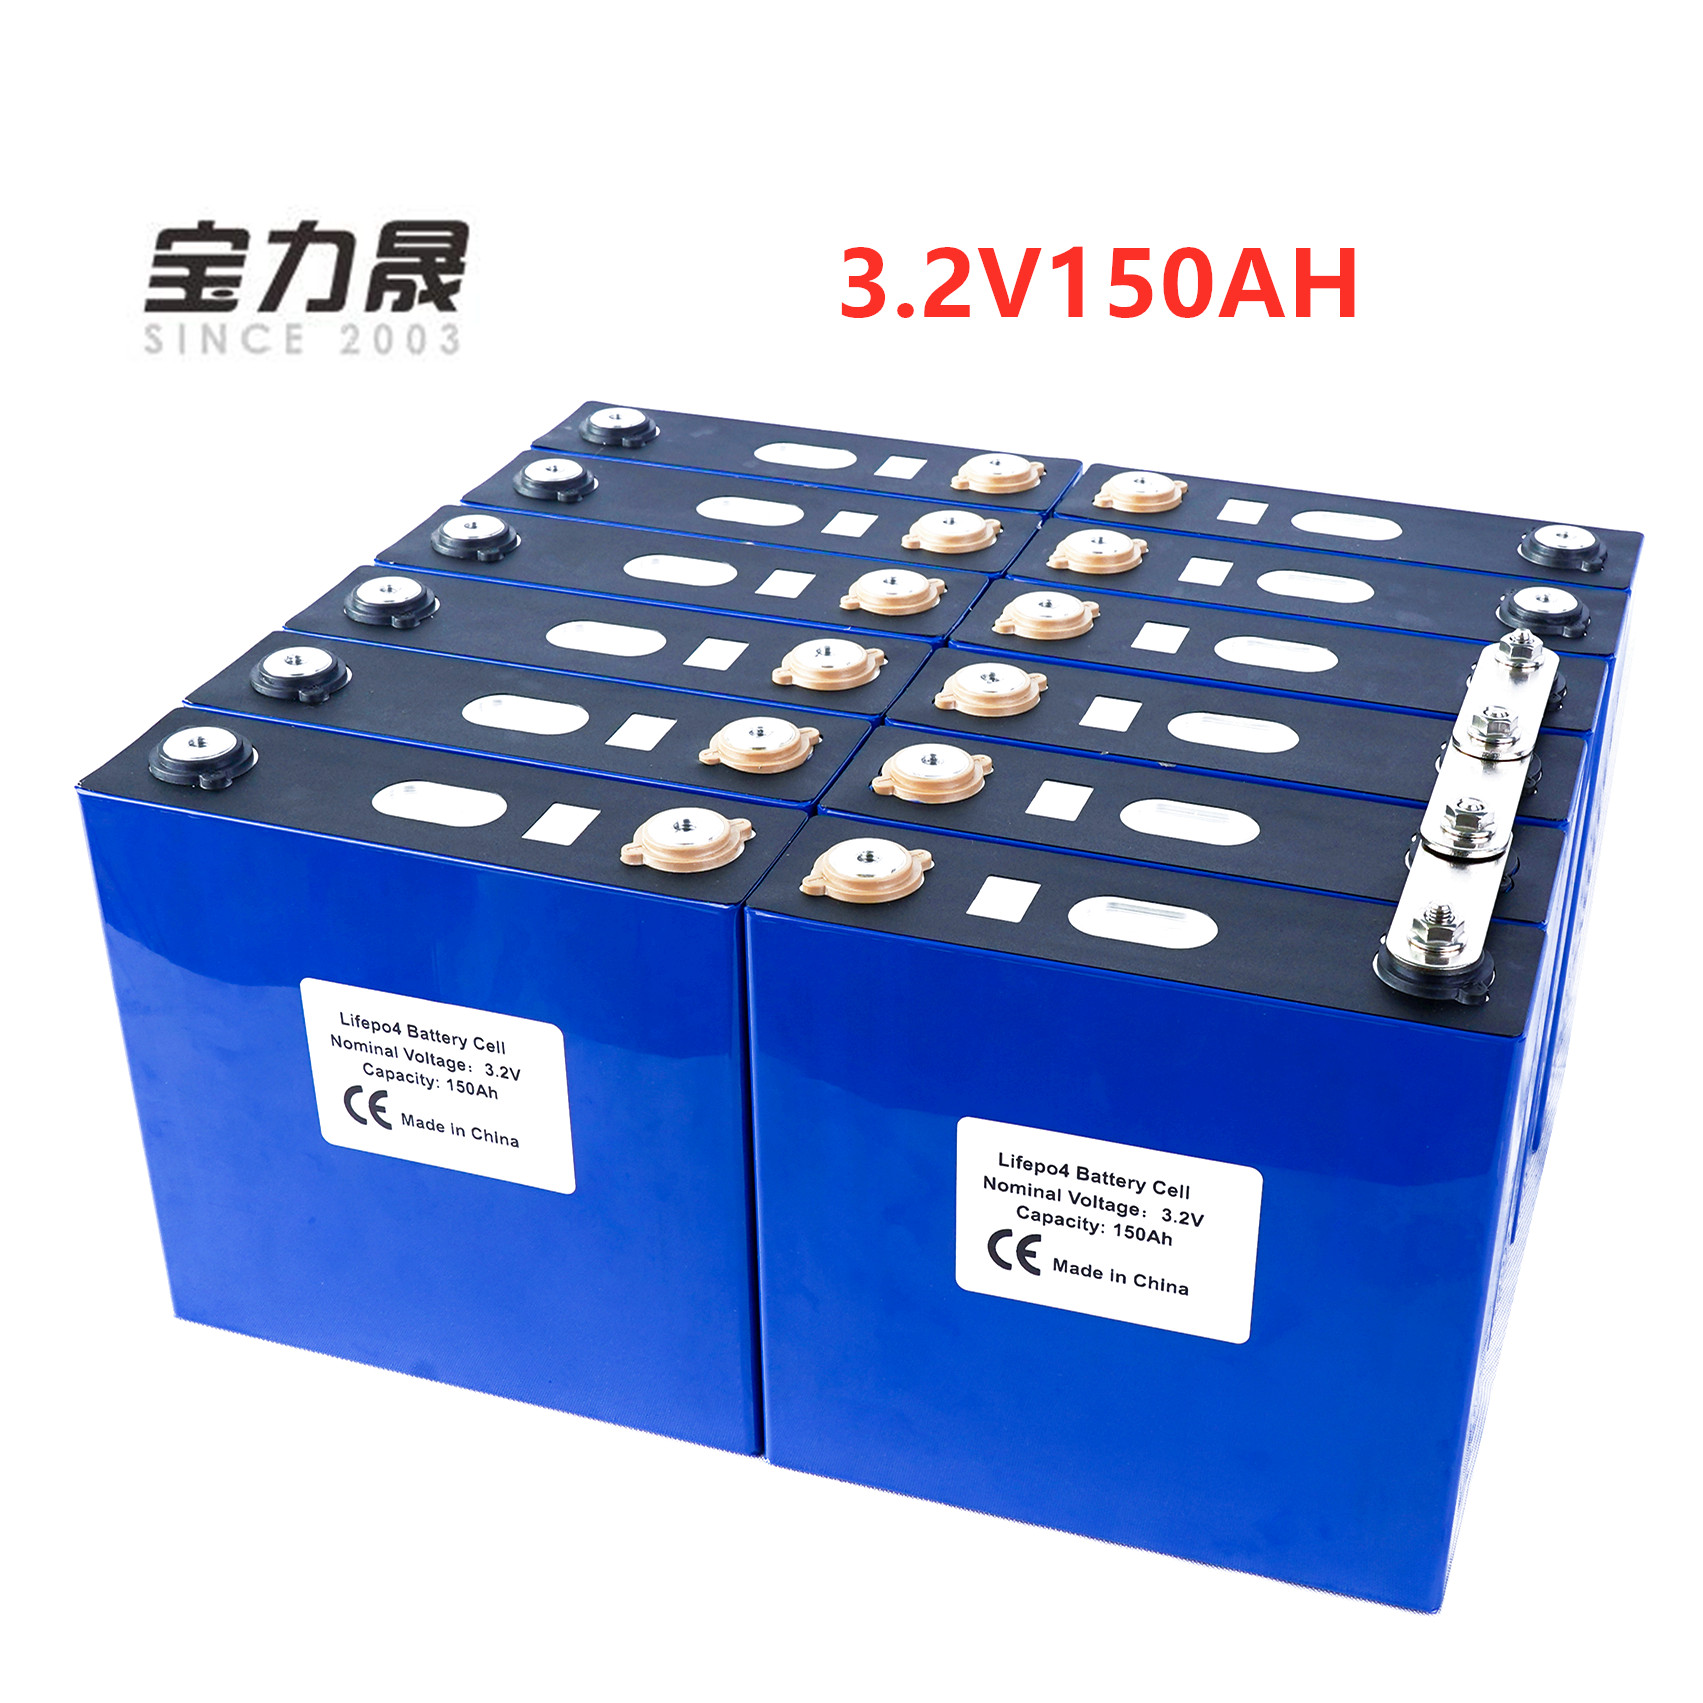 2019 NEW 16PCS 3.2V 150Ah Lithium Iron Phosphate Cell Lifepo4 Battery  Solar 24V300AH 48V150Ah Cells Not 120Ah EU US TAX FREE